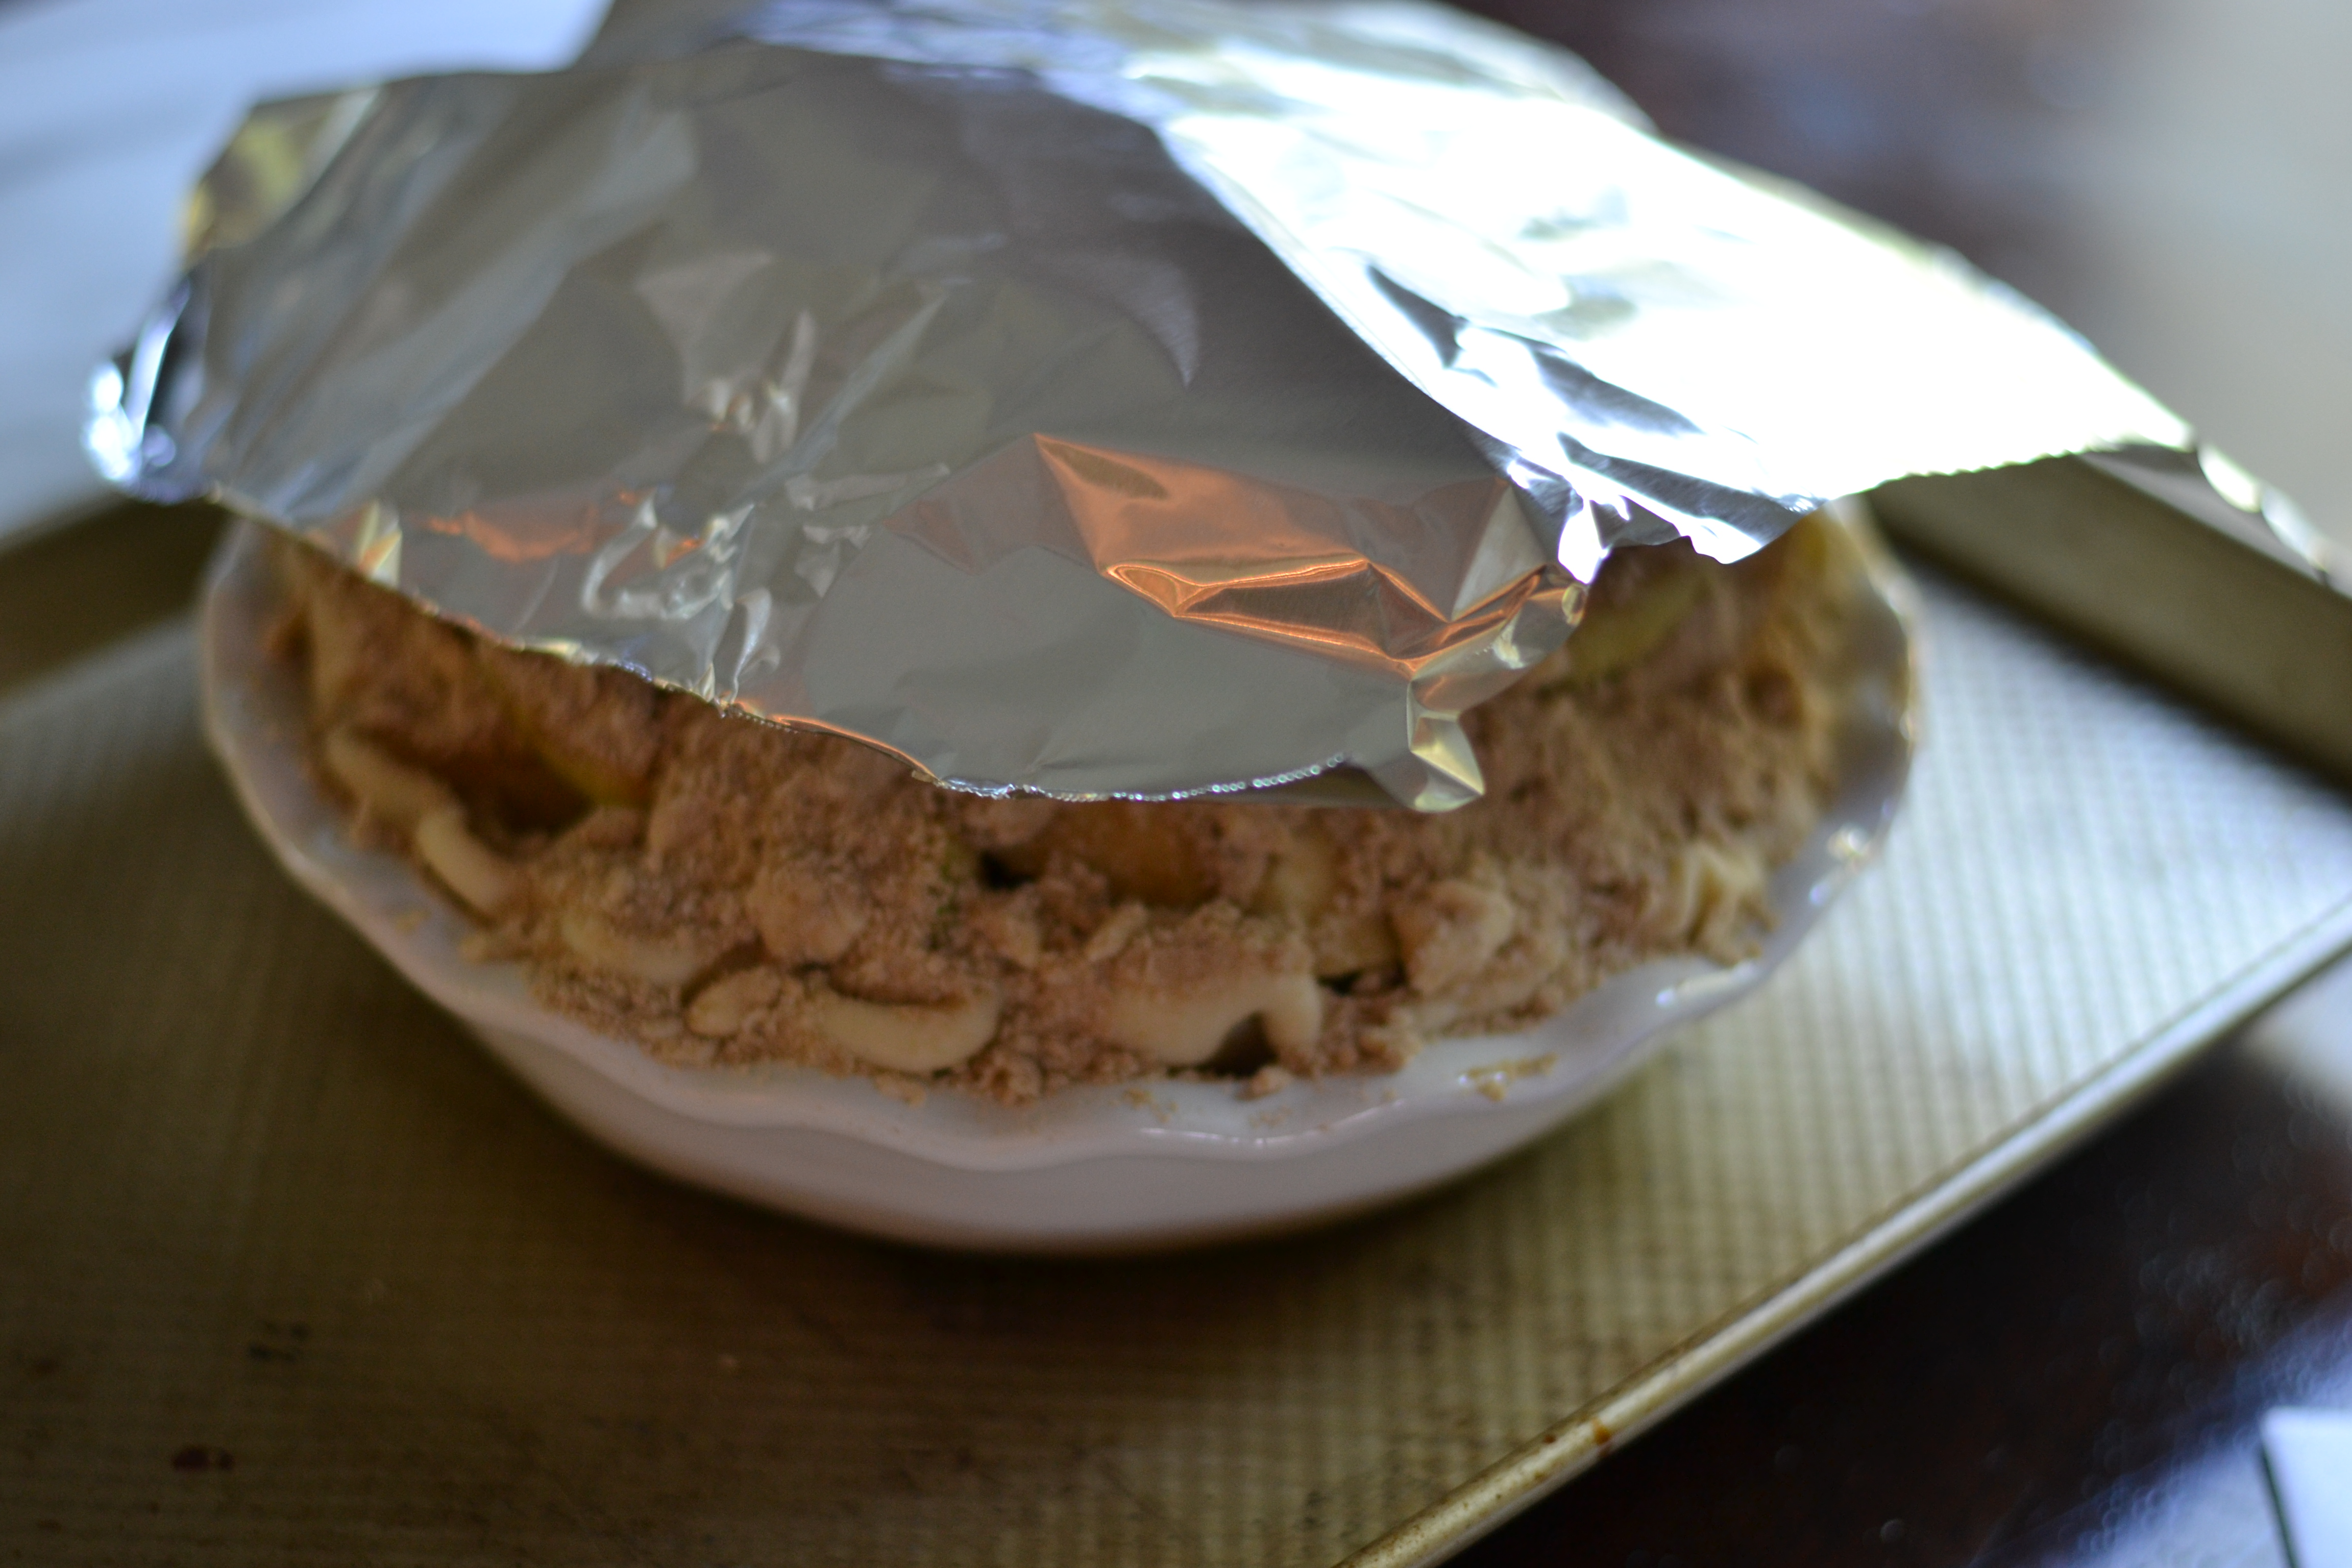 Tent the pie with a piece of foil and set on a baking sheet. Place in a 400 degree oven for 20 minutes. Remove the foil and continue baking until the top ... & Apple Pie : Martin Family Style